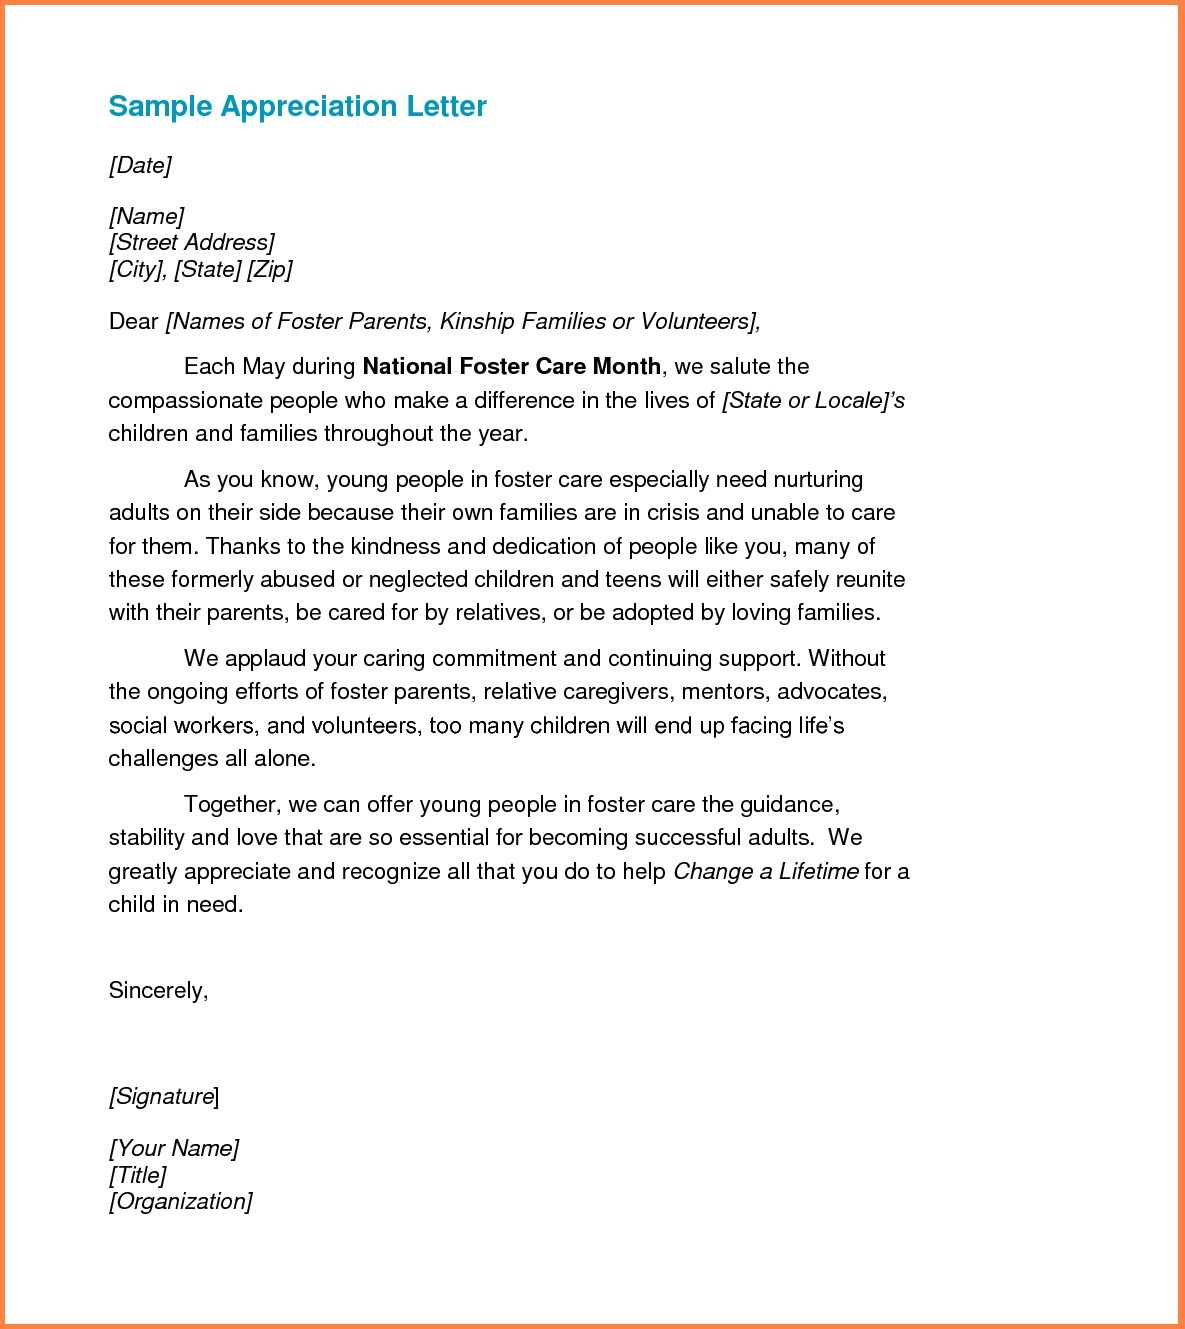 Appreciation Letter Sample Template Resume Builder Recognition